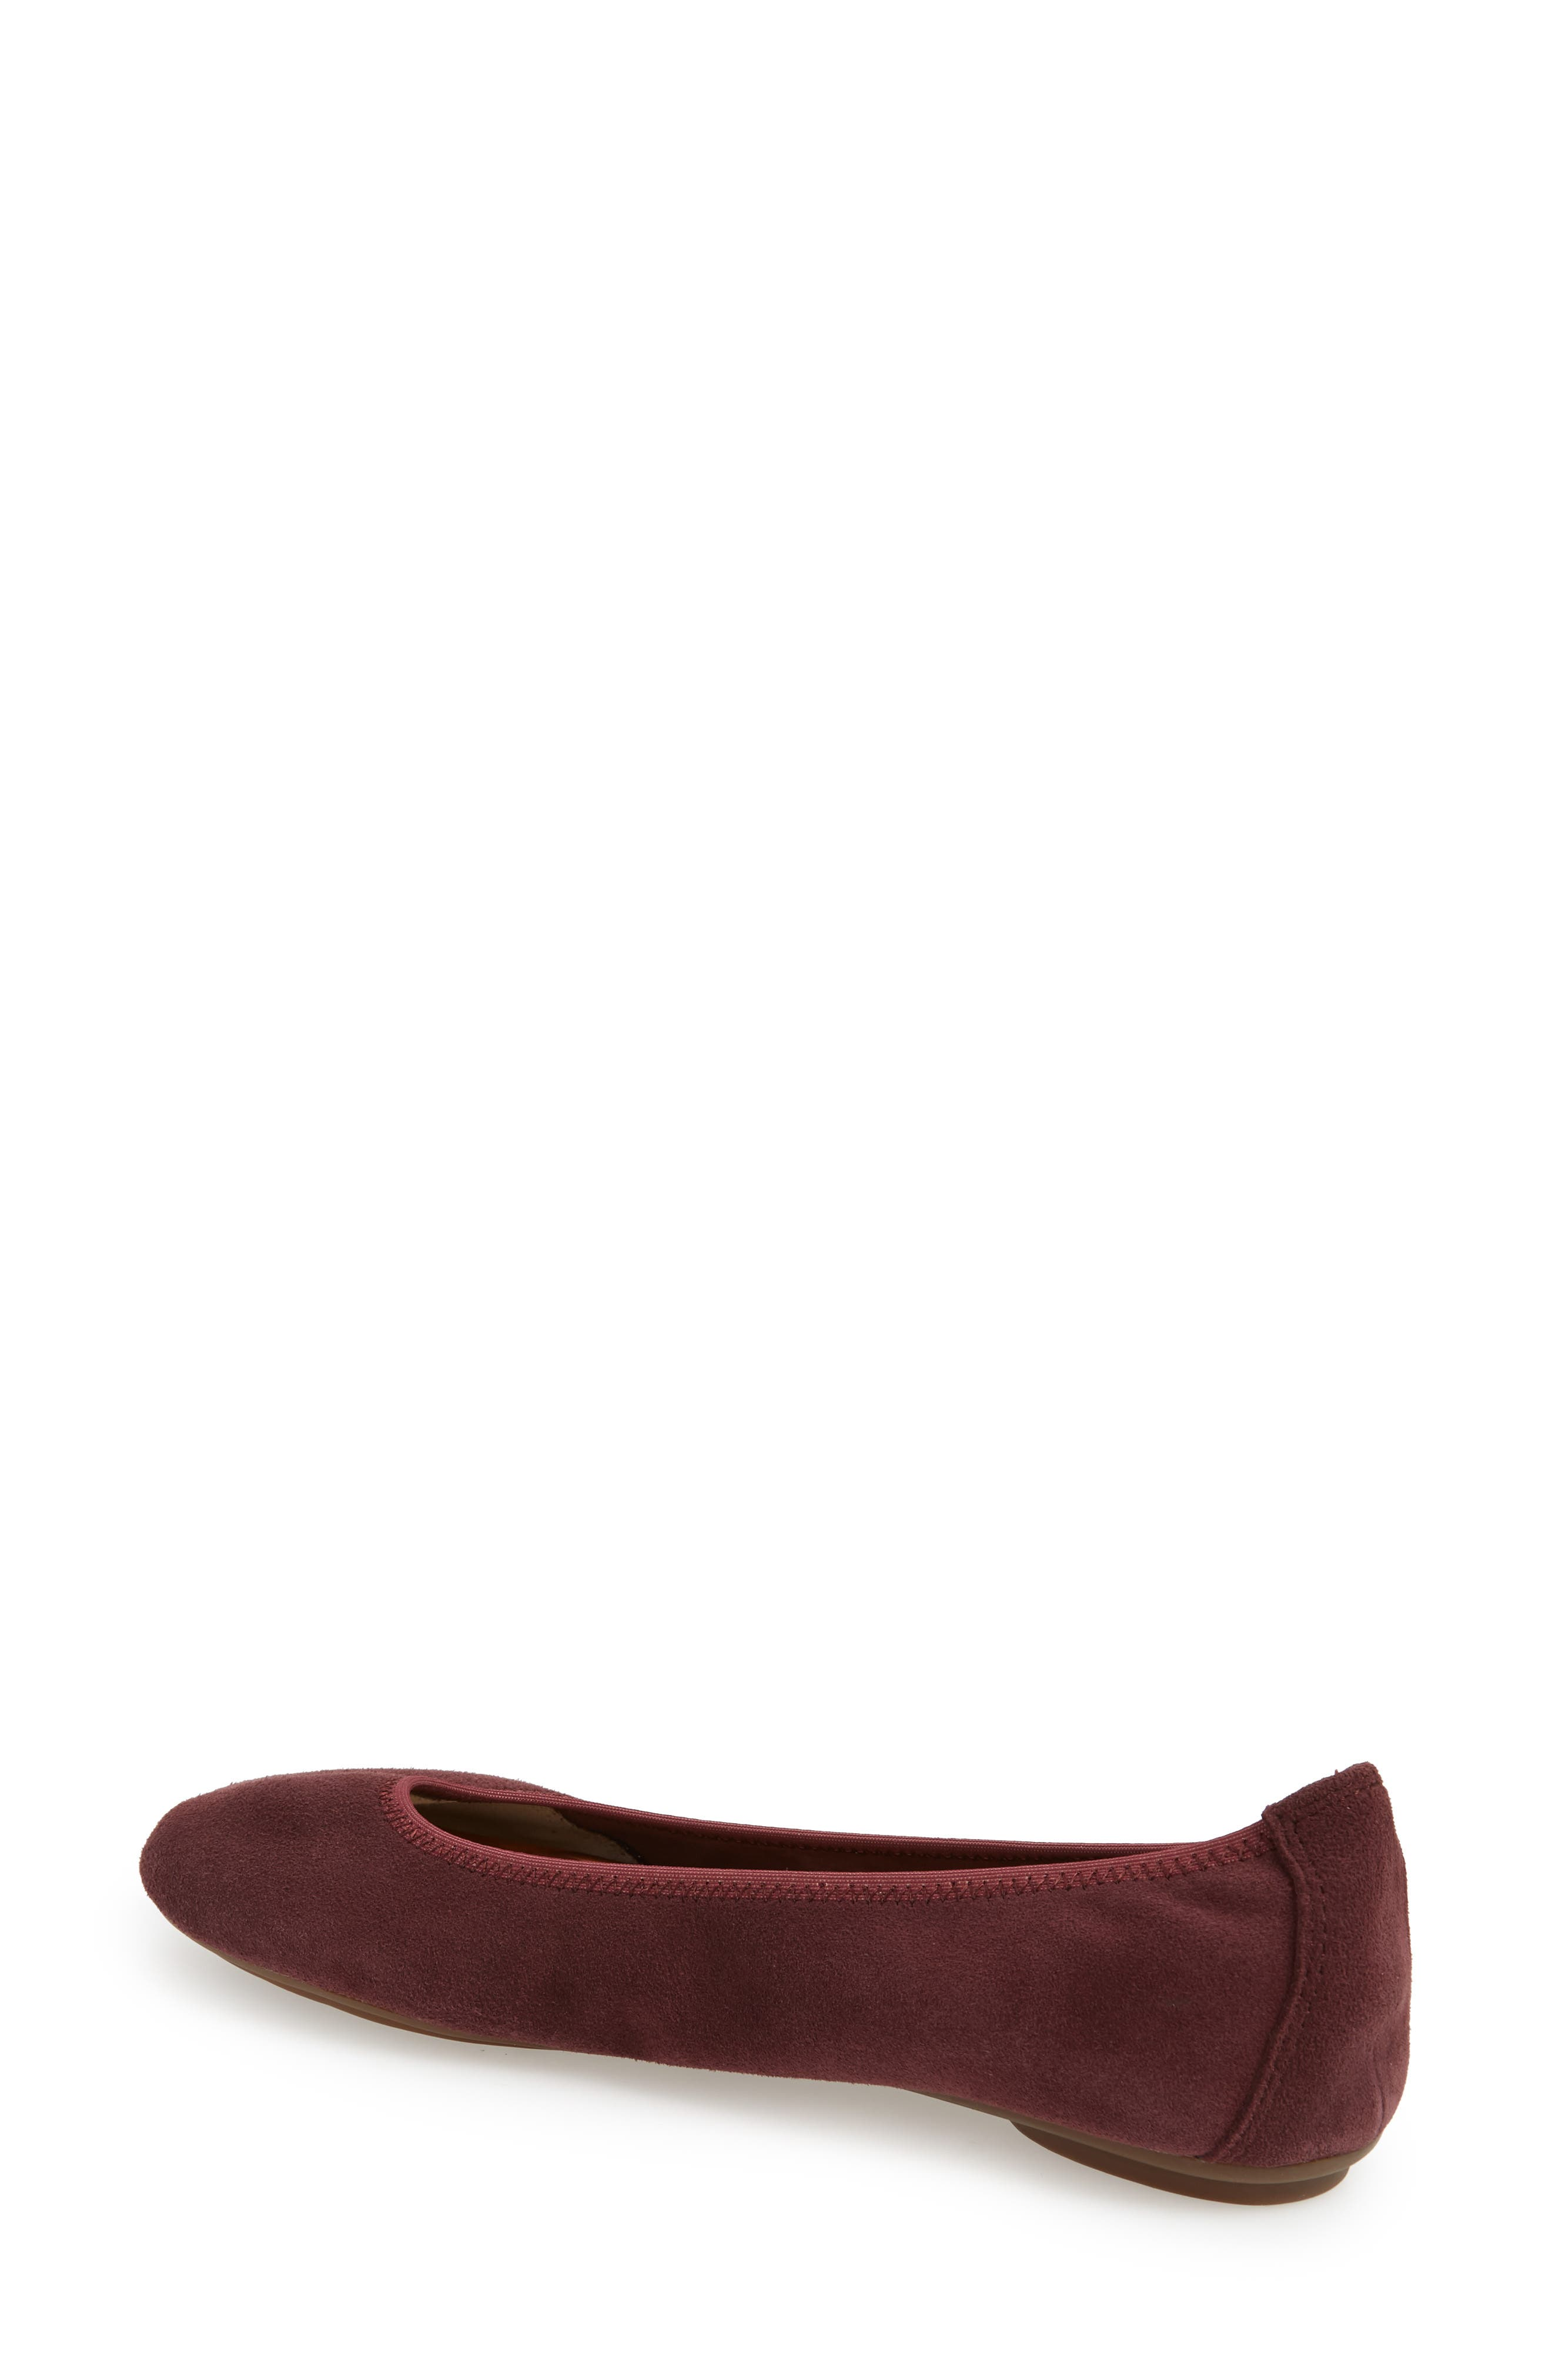 'Chaste' Ballet Flat,                             Alternate thumbnail 2, color,                             DARK WINE SUEDE